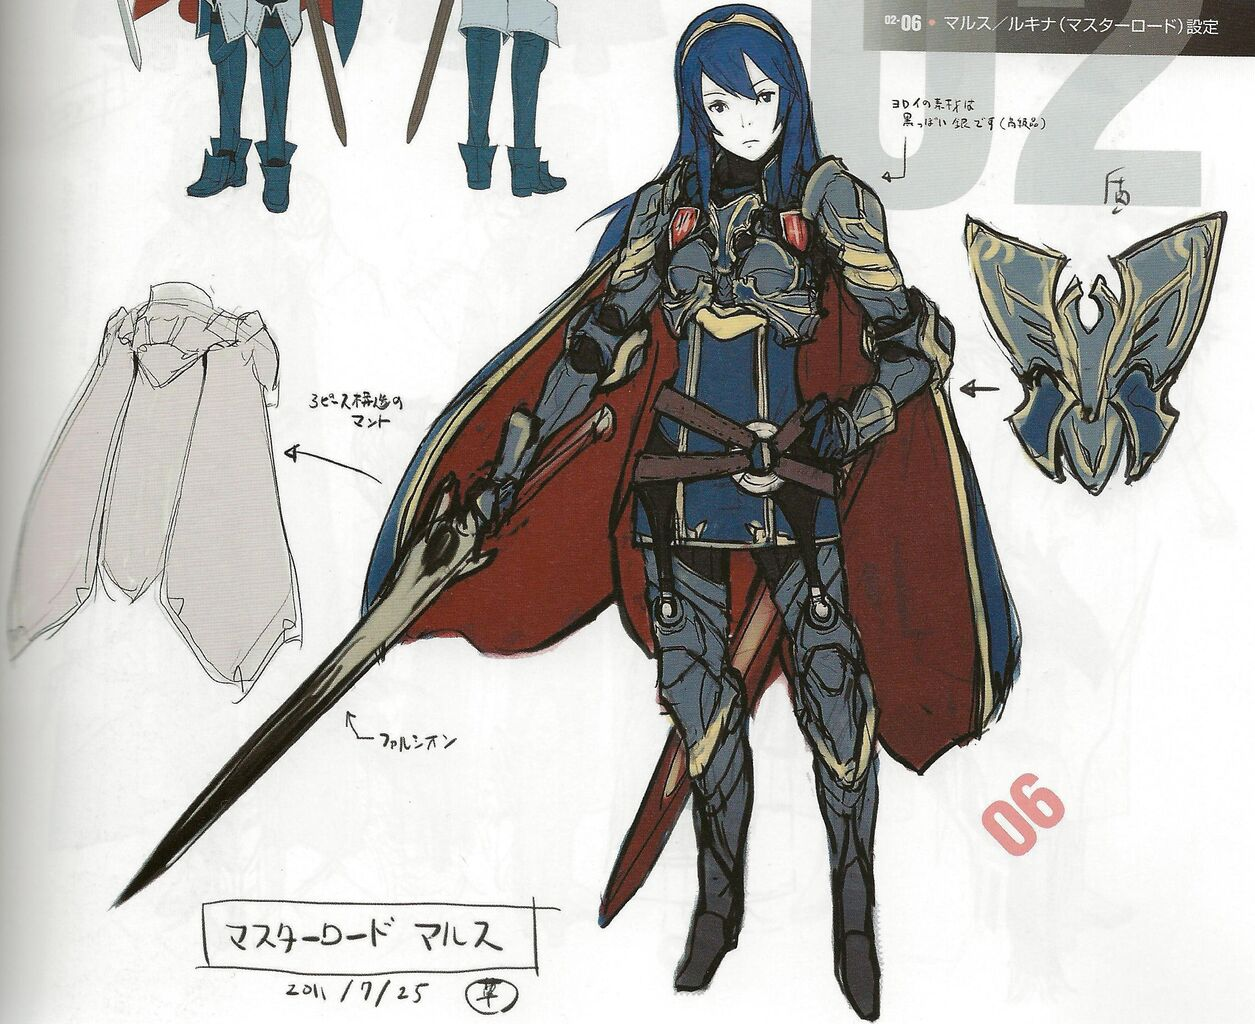 Full resolution      2 261   215  1 845 pixels  file size  688 KB  MIME    Fire Emblem Lucina And Avatar